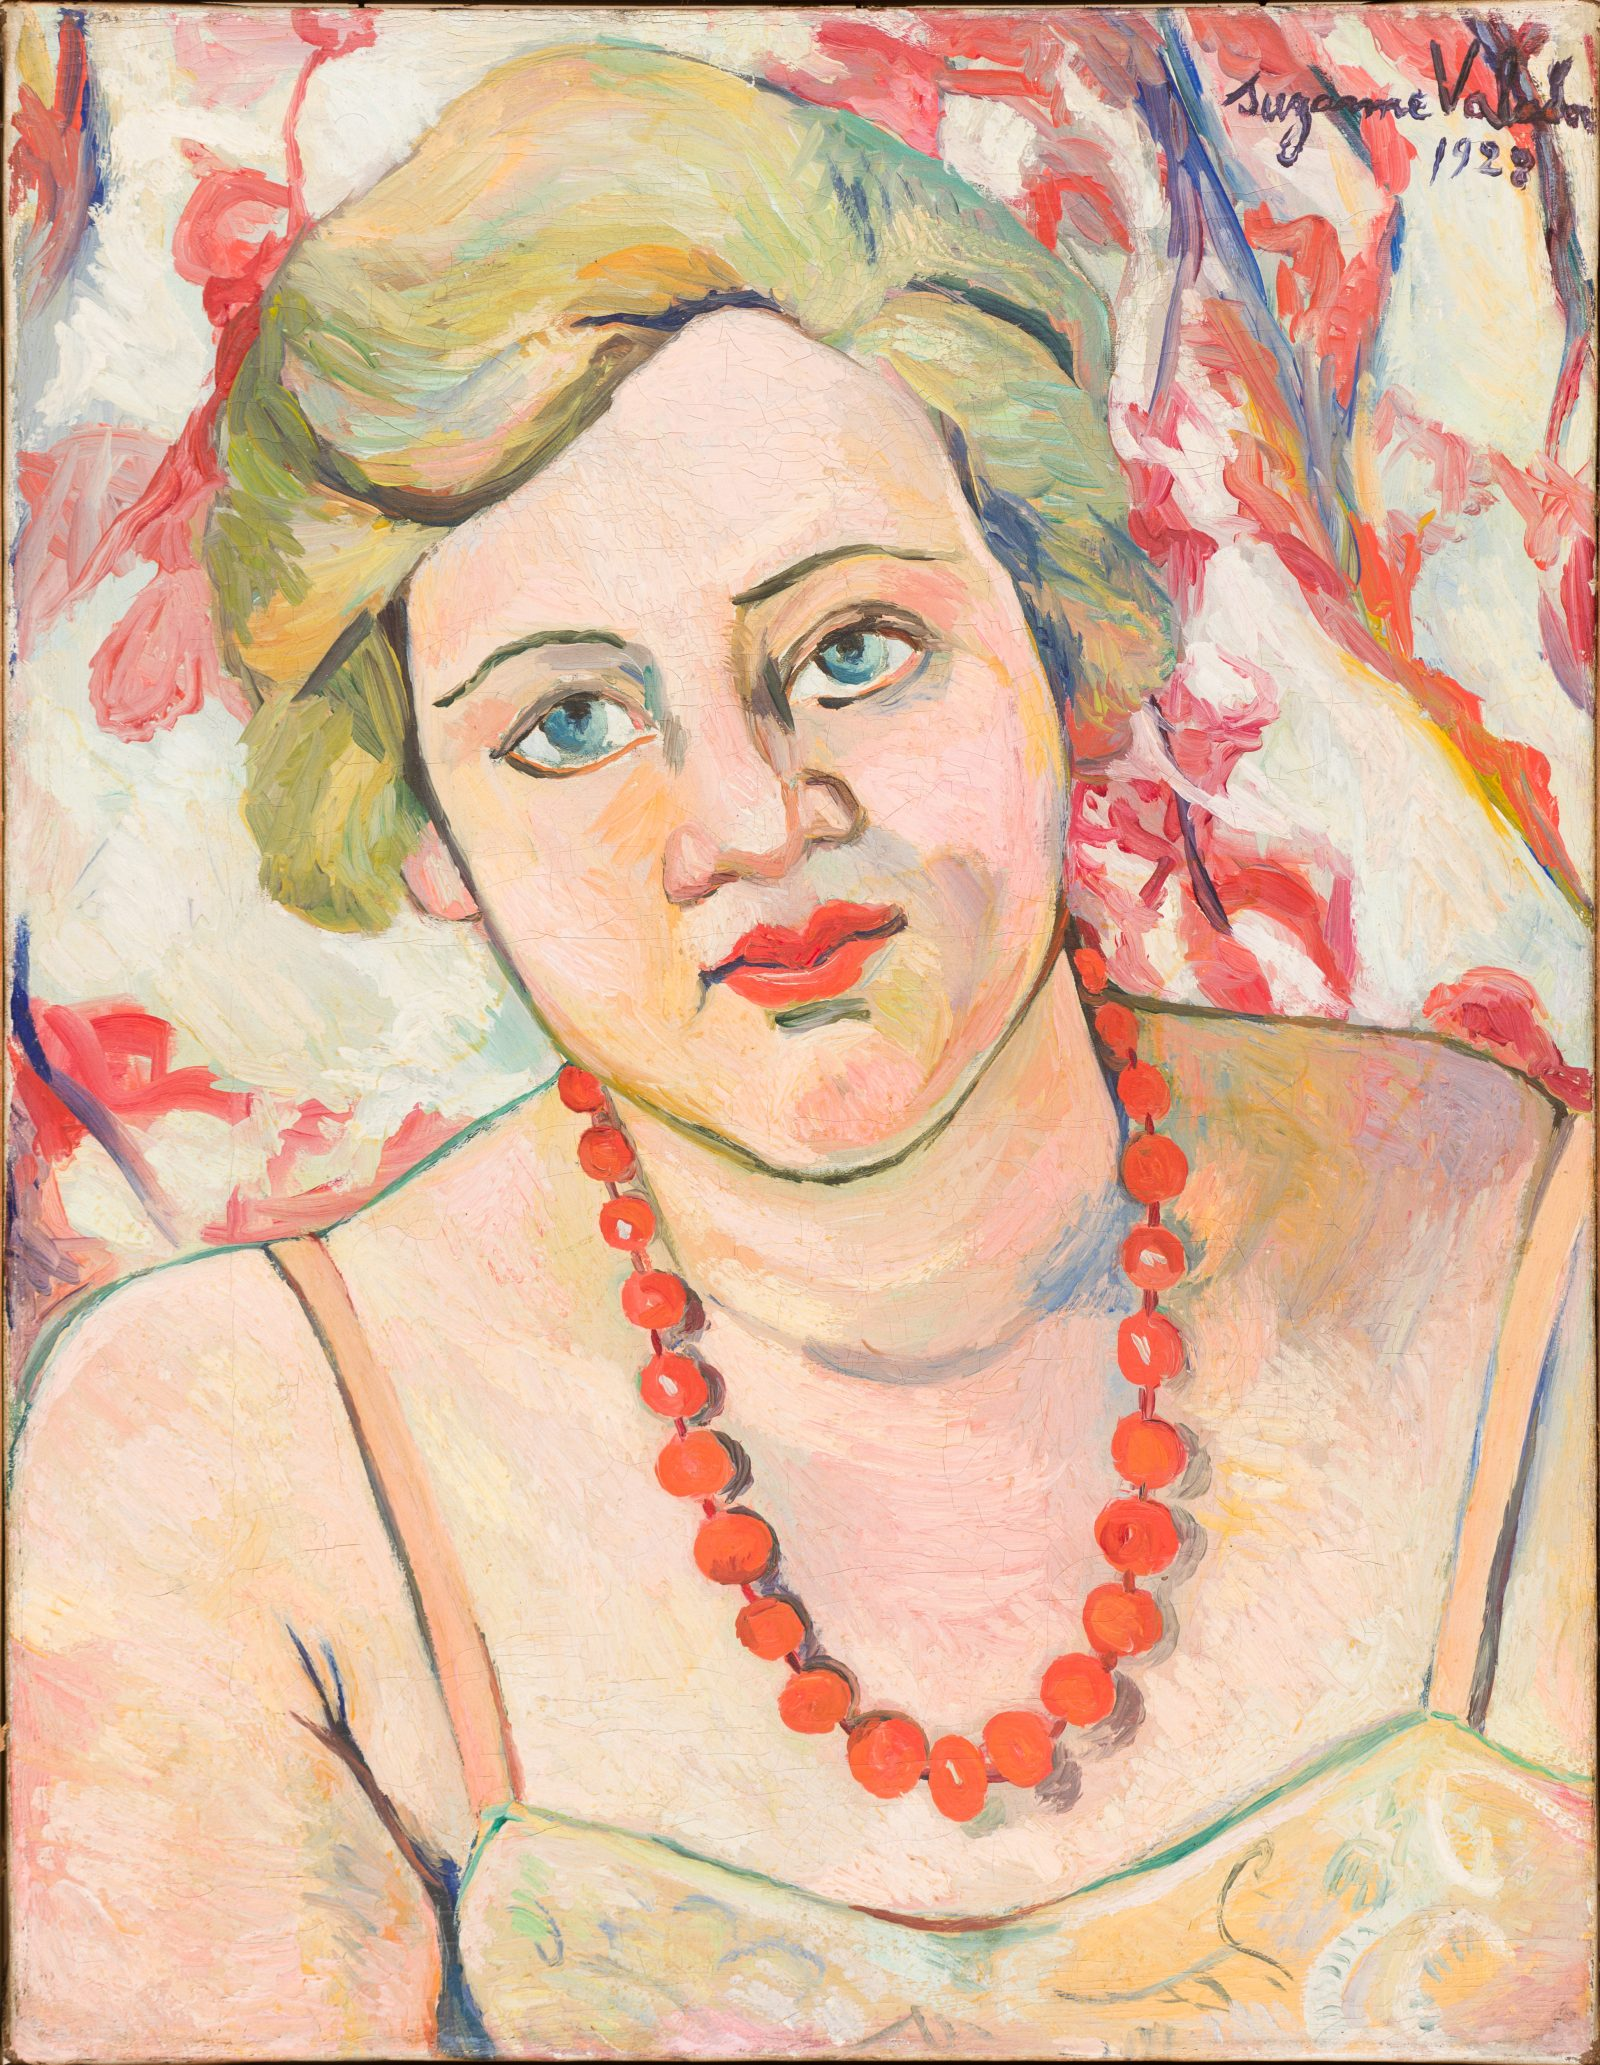 SUZANNE VALADON ( French, 1865 - 1938 ) Portrait of a Woman , 1928 Oil on canvas 13 3/4 x 10 ¾ in . (34.9 x 27.3 cm) Gift of Mr. and Mrs. William E. Benjamin, 2015.57